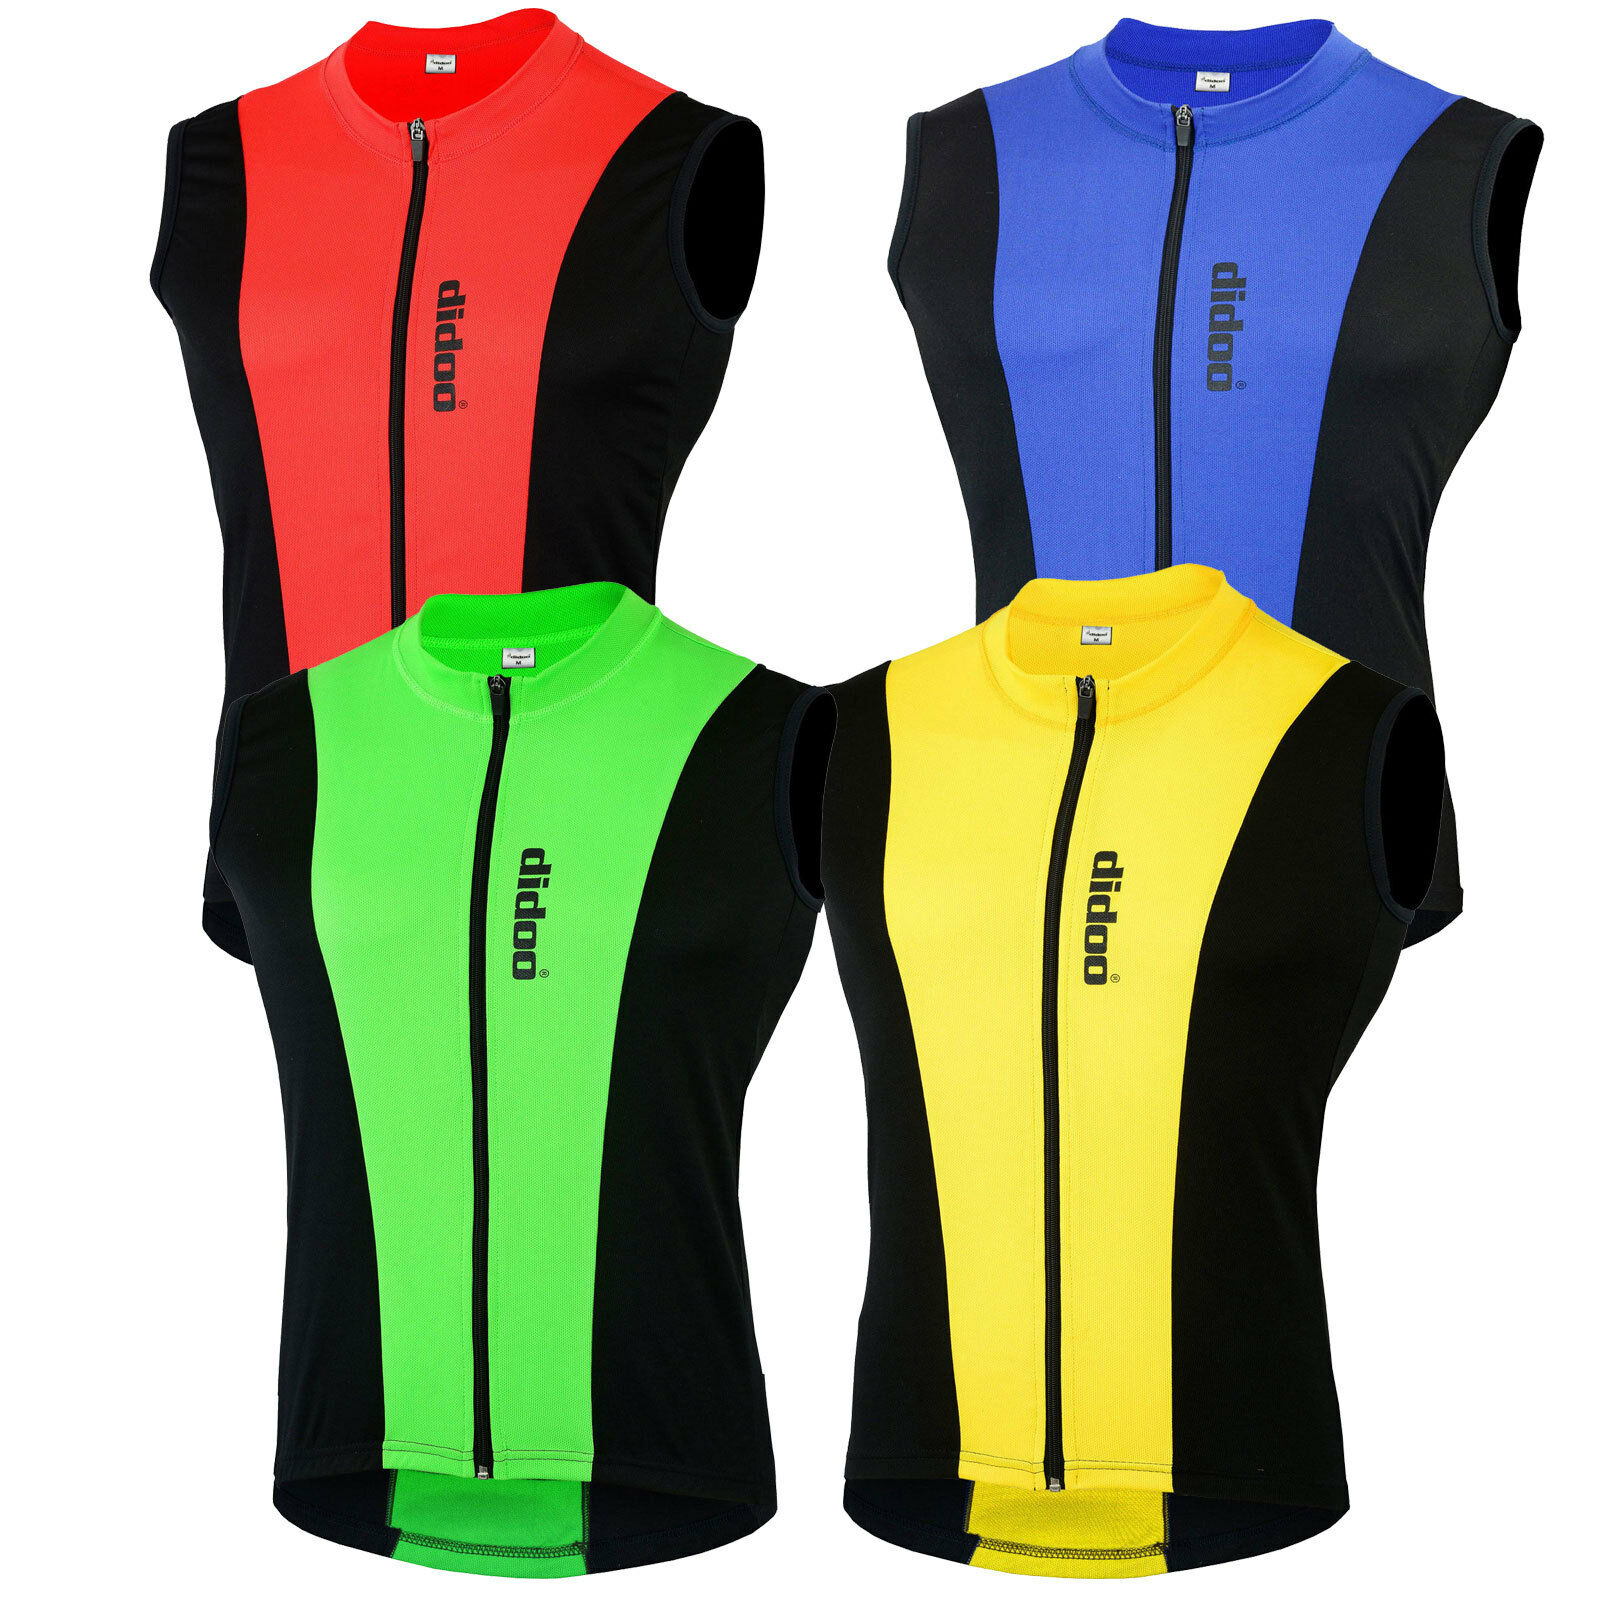 Didoo New Men/'s Sleeveless Cycling Shirt Outdoor Top Bicycle Sports Clothing